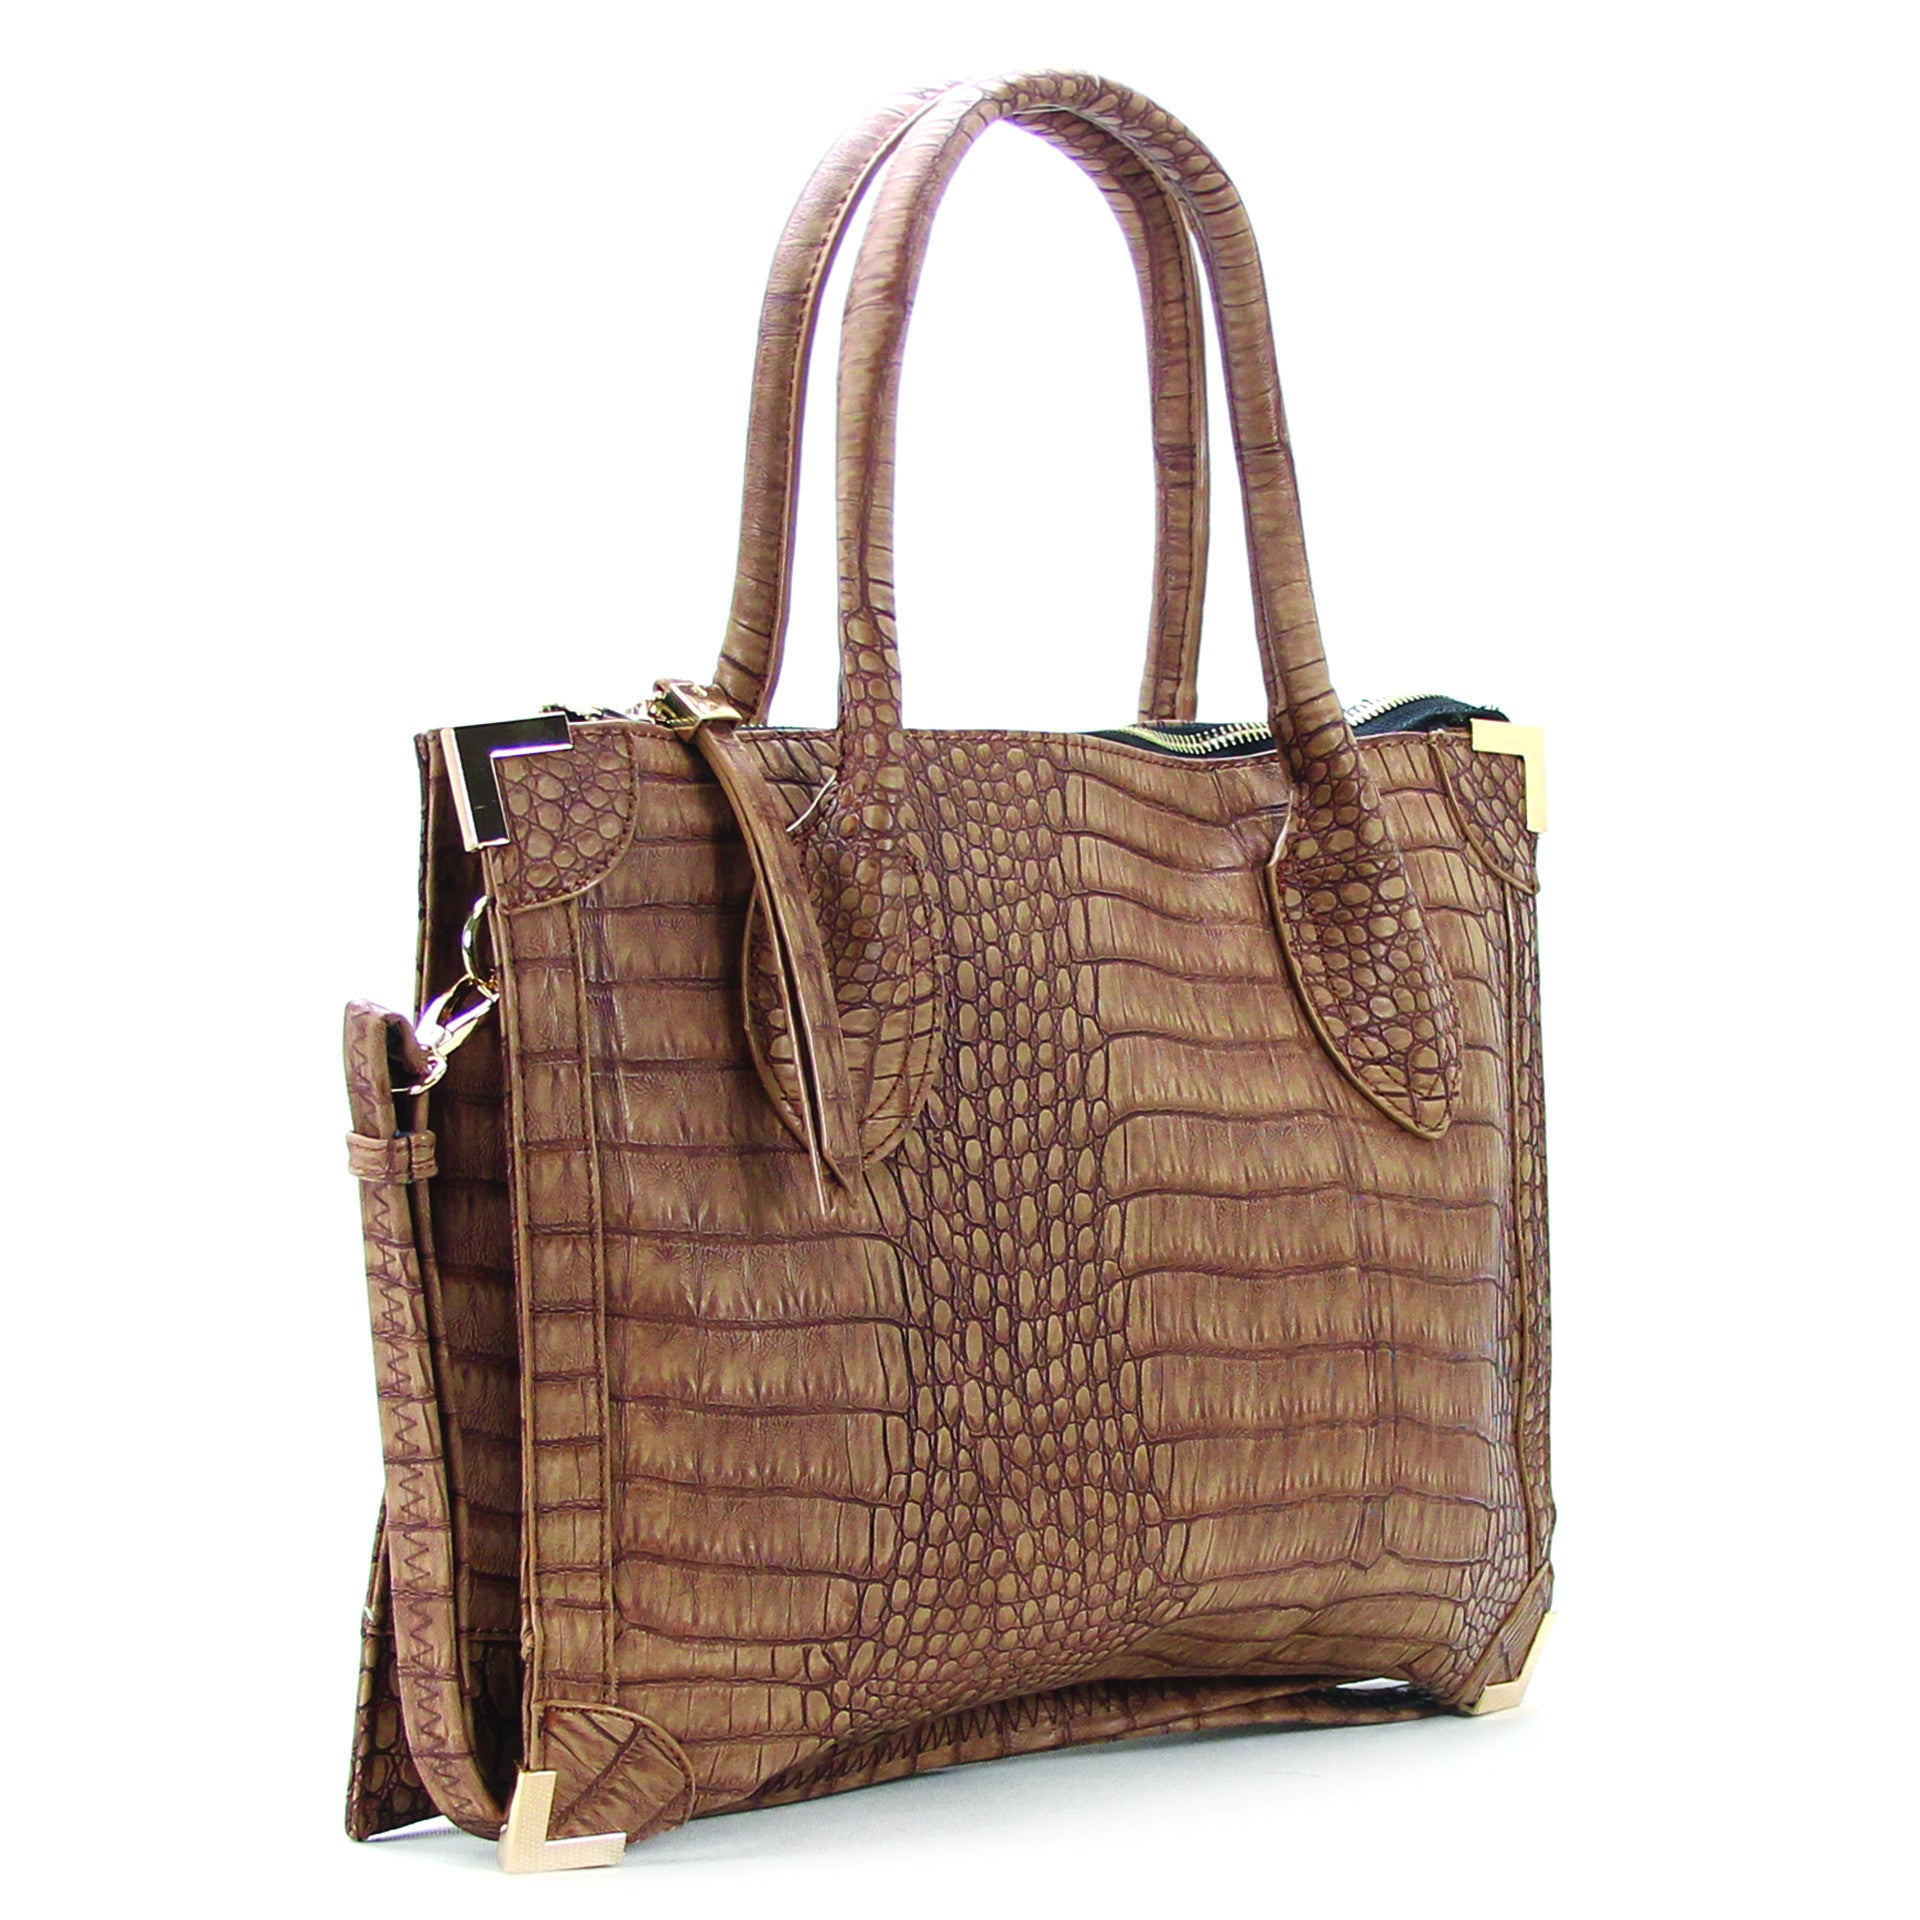 Trendy Classic Snake Print Purse Handbag Tote Bag  - Coffee - Pop Fashion